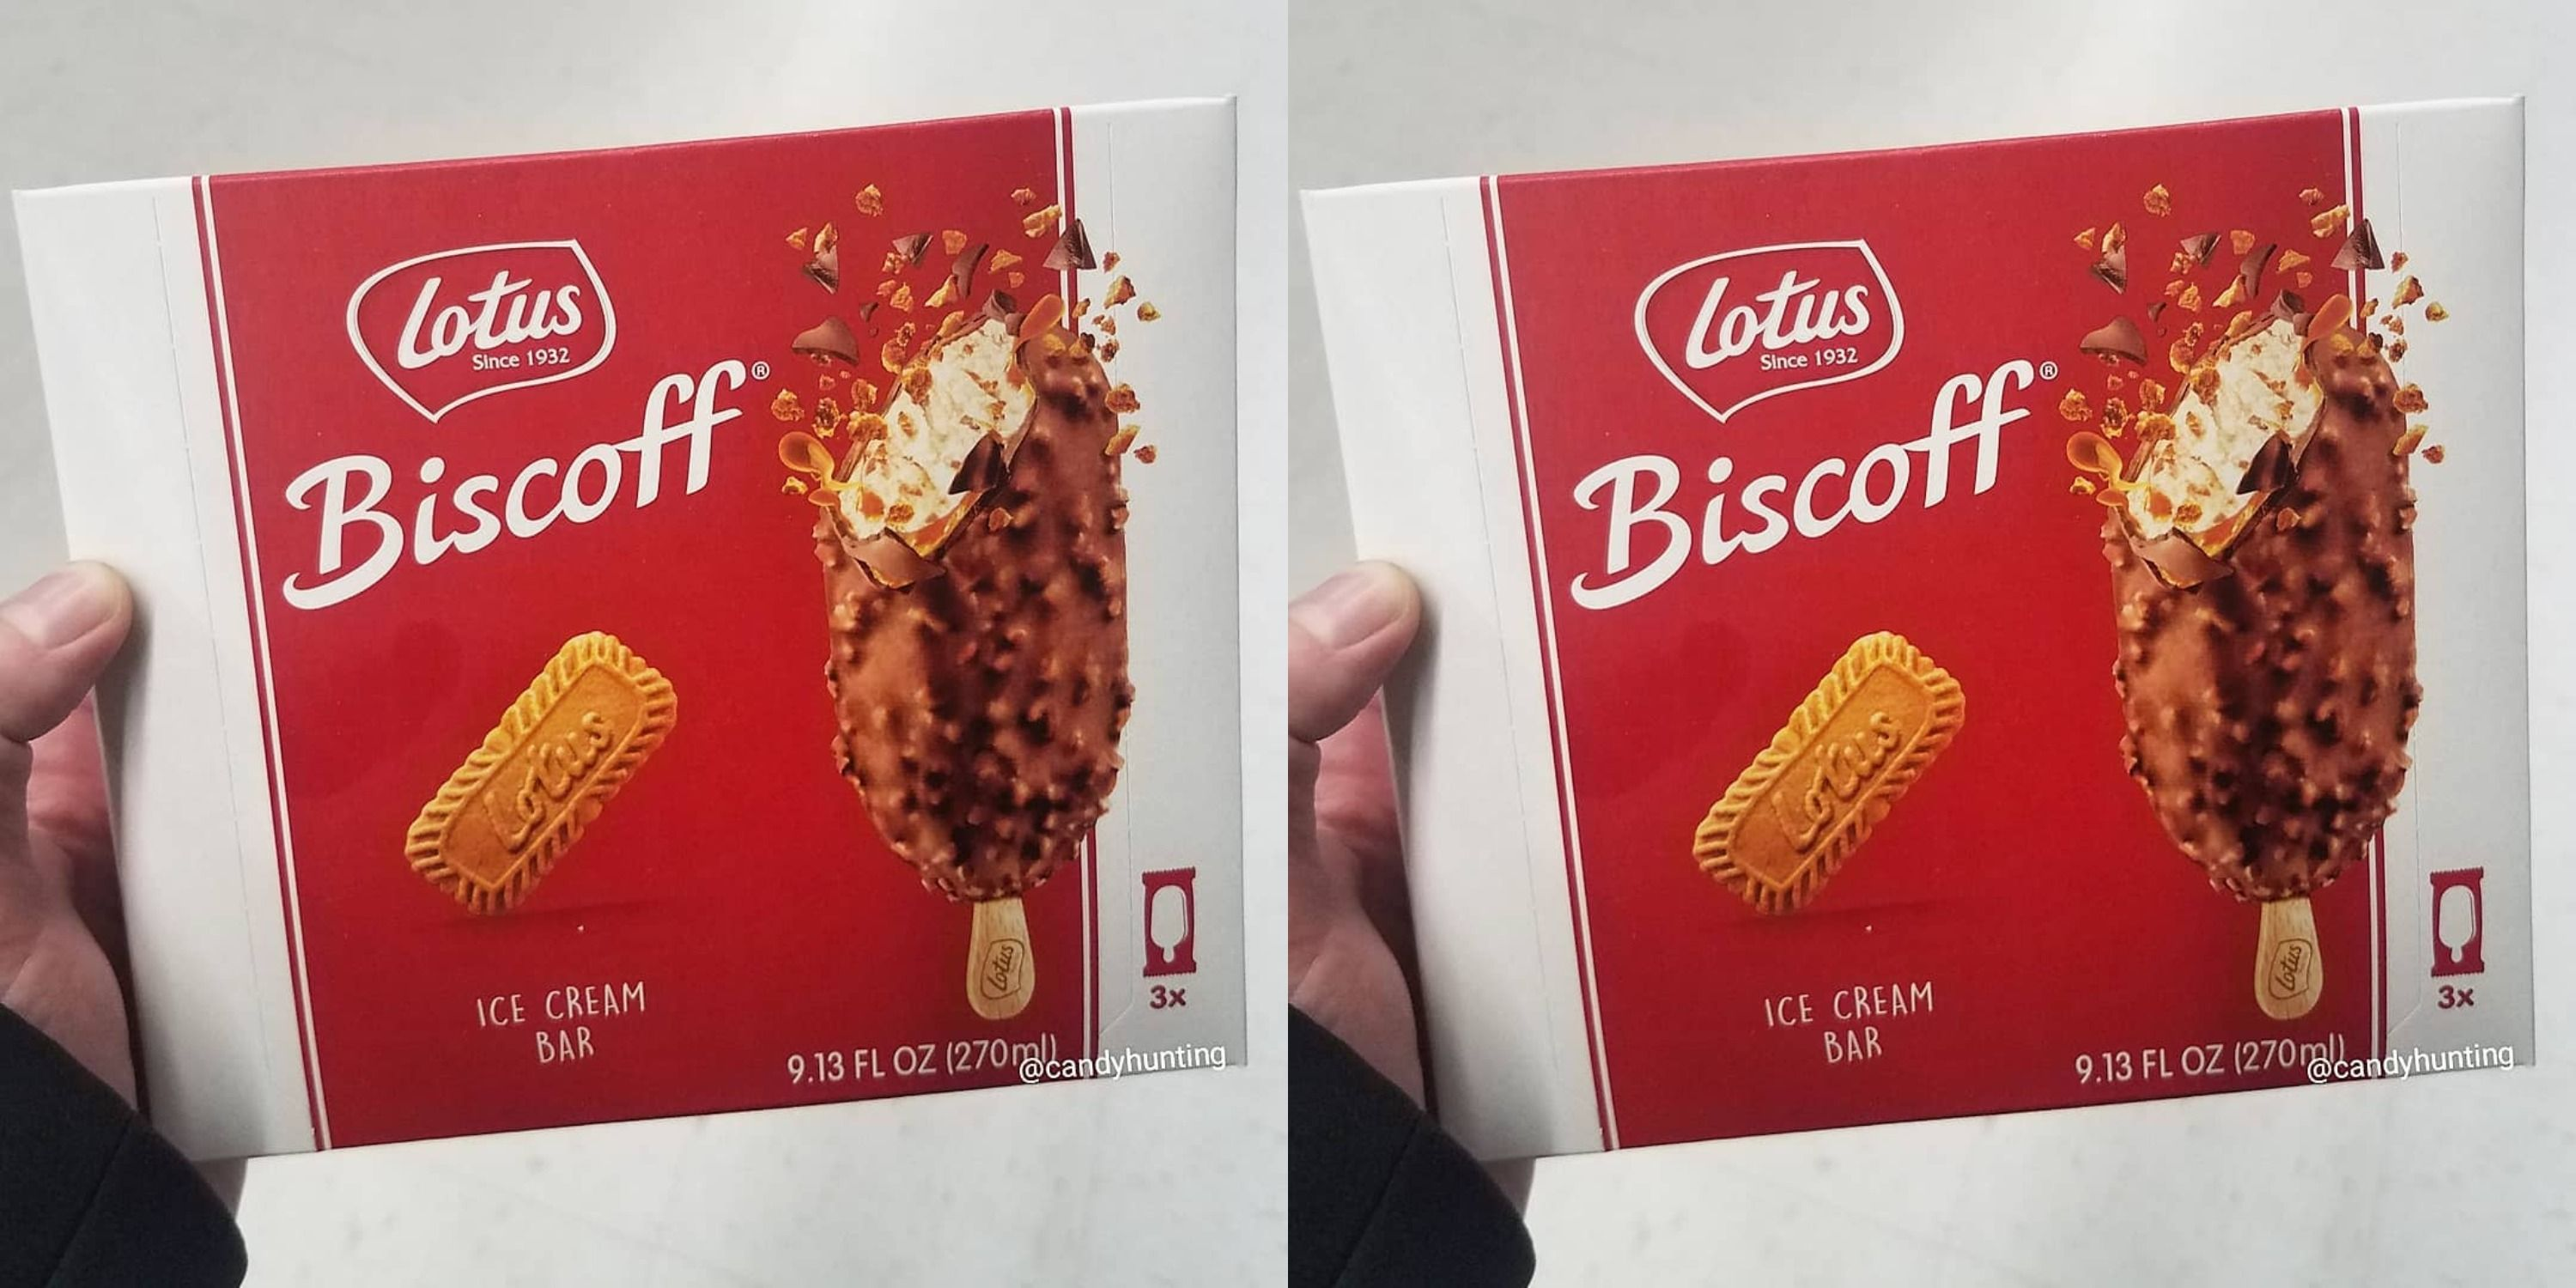 Lotus Biscoff Ice Cream Bars Are Here In The U.S.